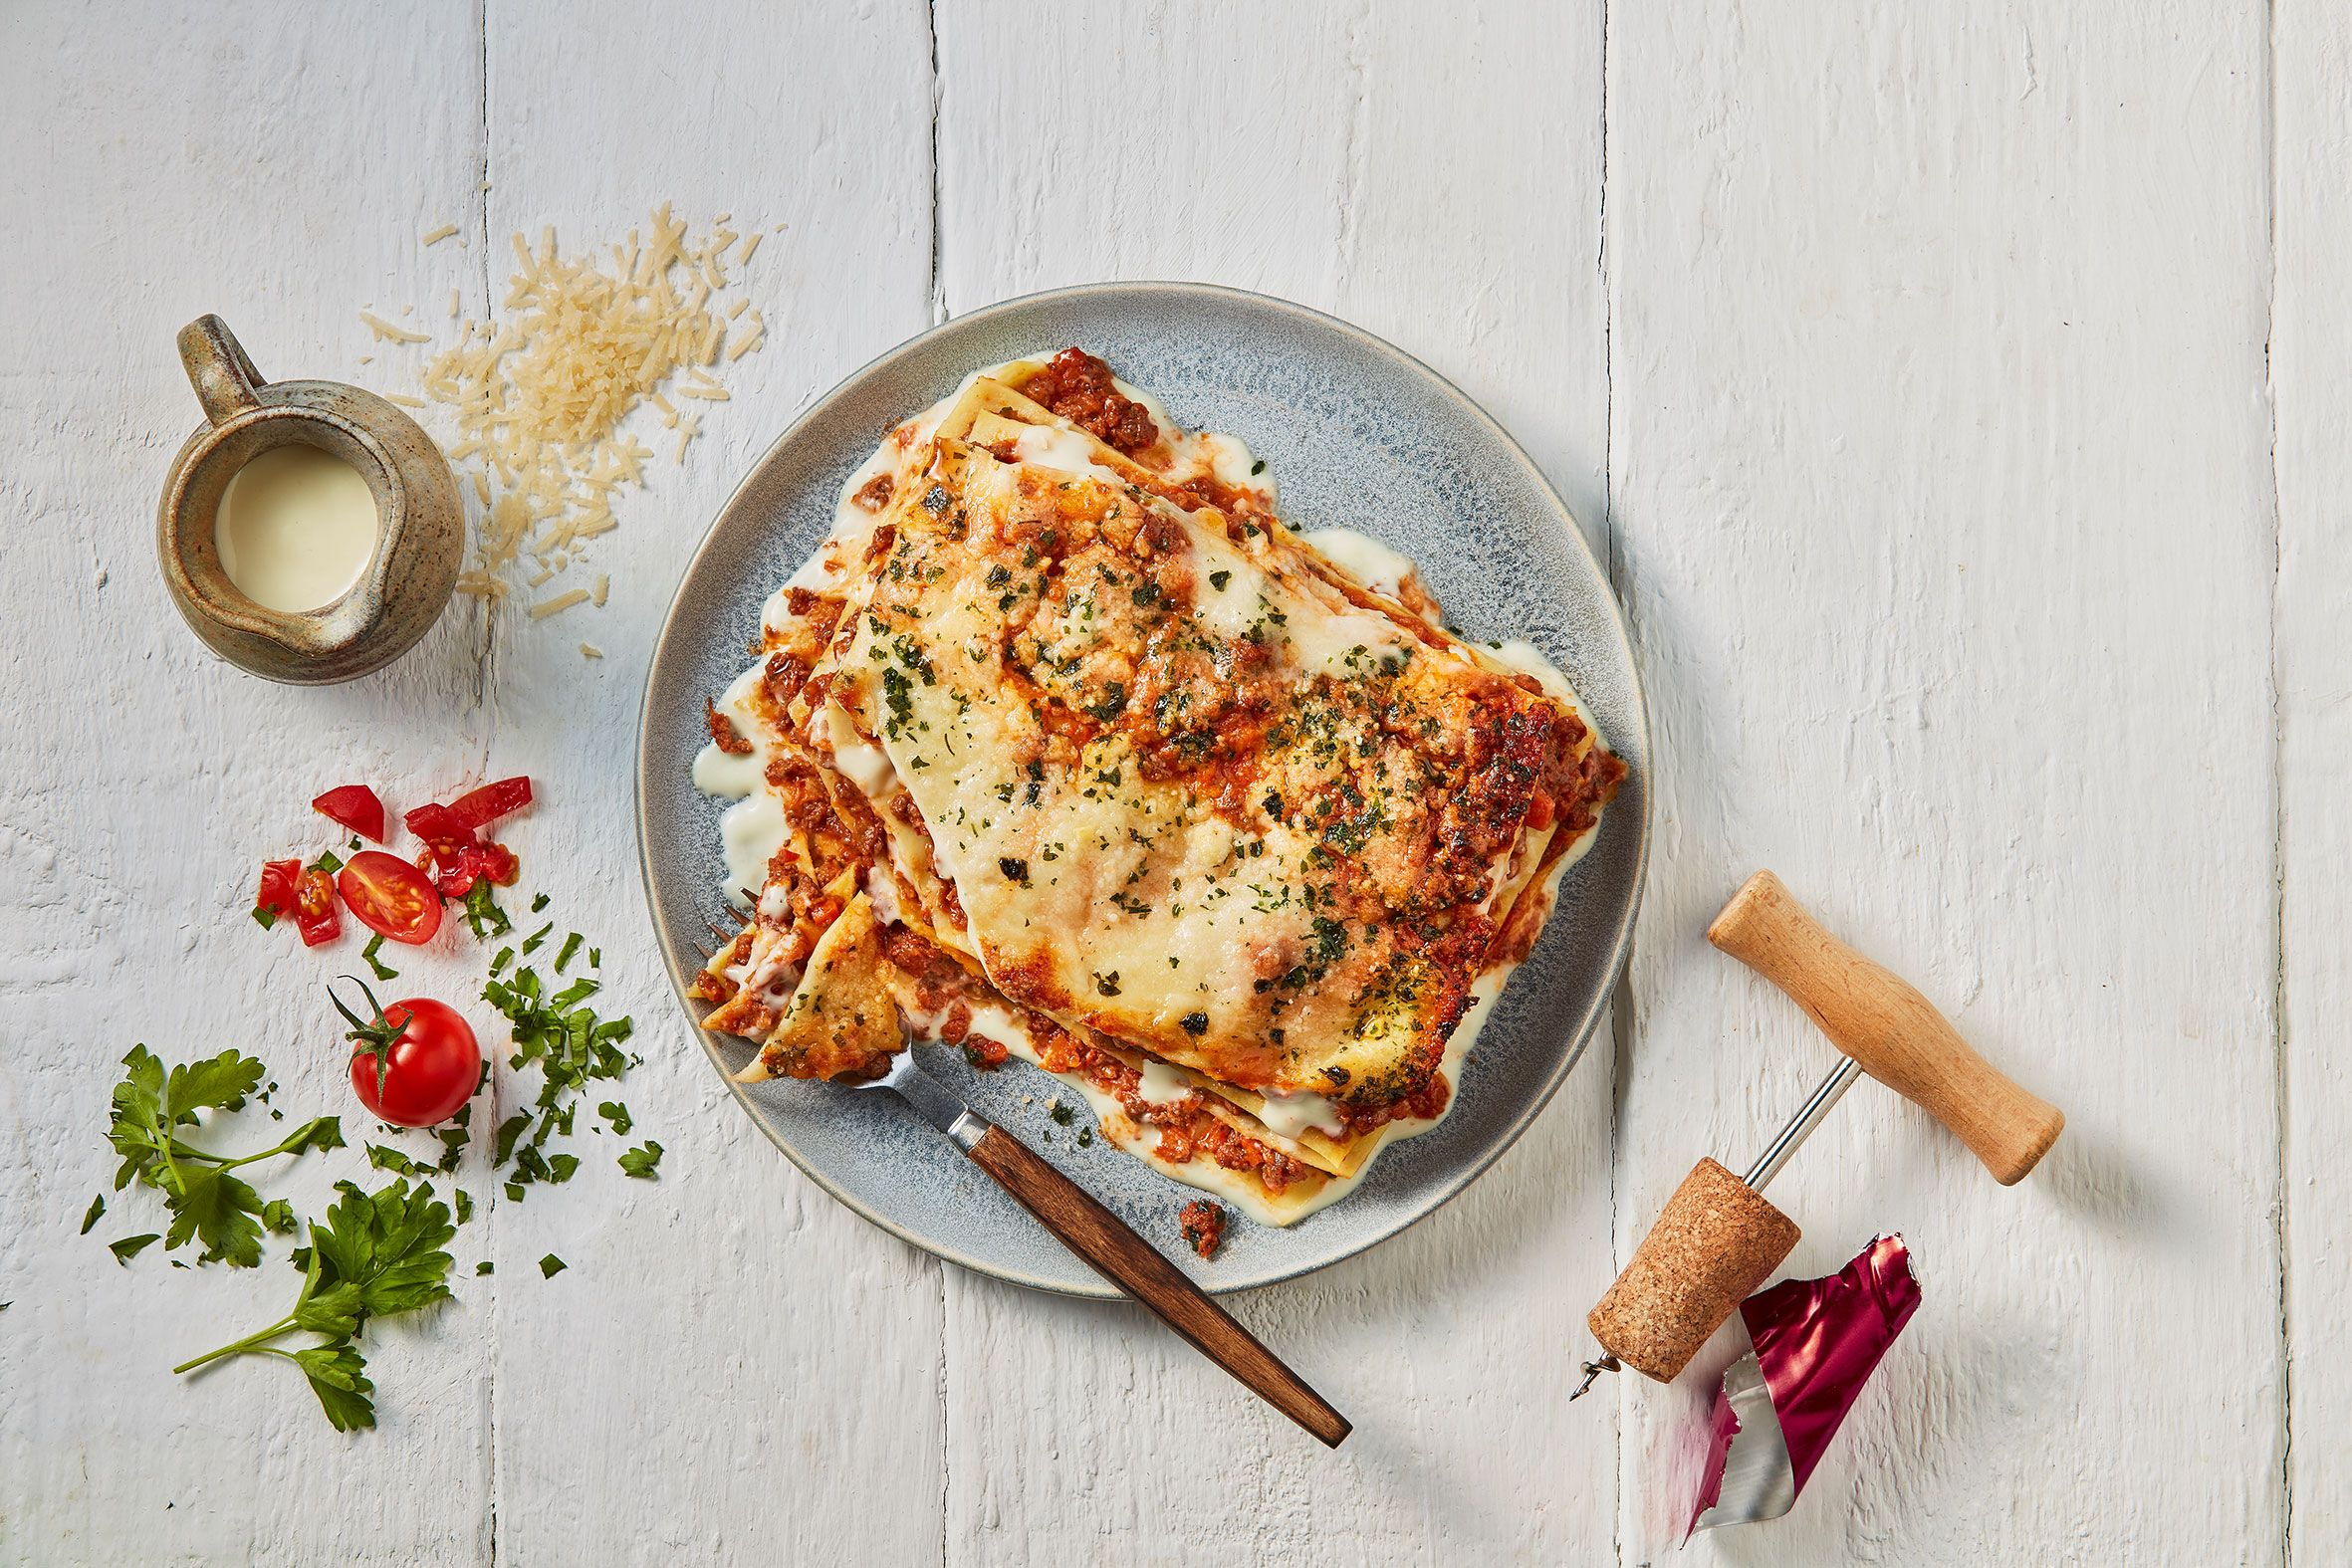 Gino D'Acampo launches new range of frozen foods at Iceland